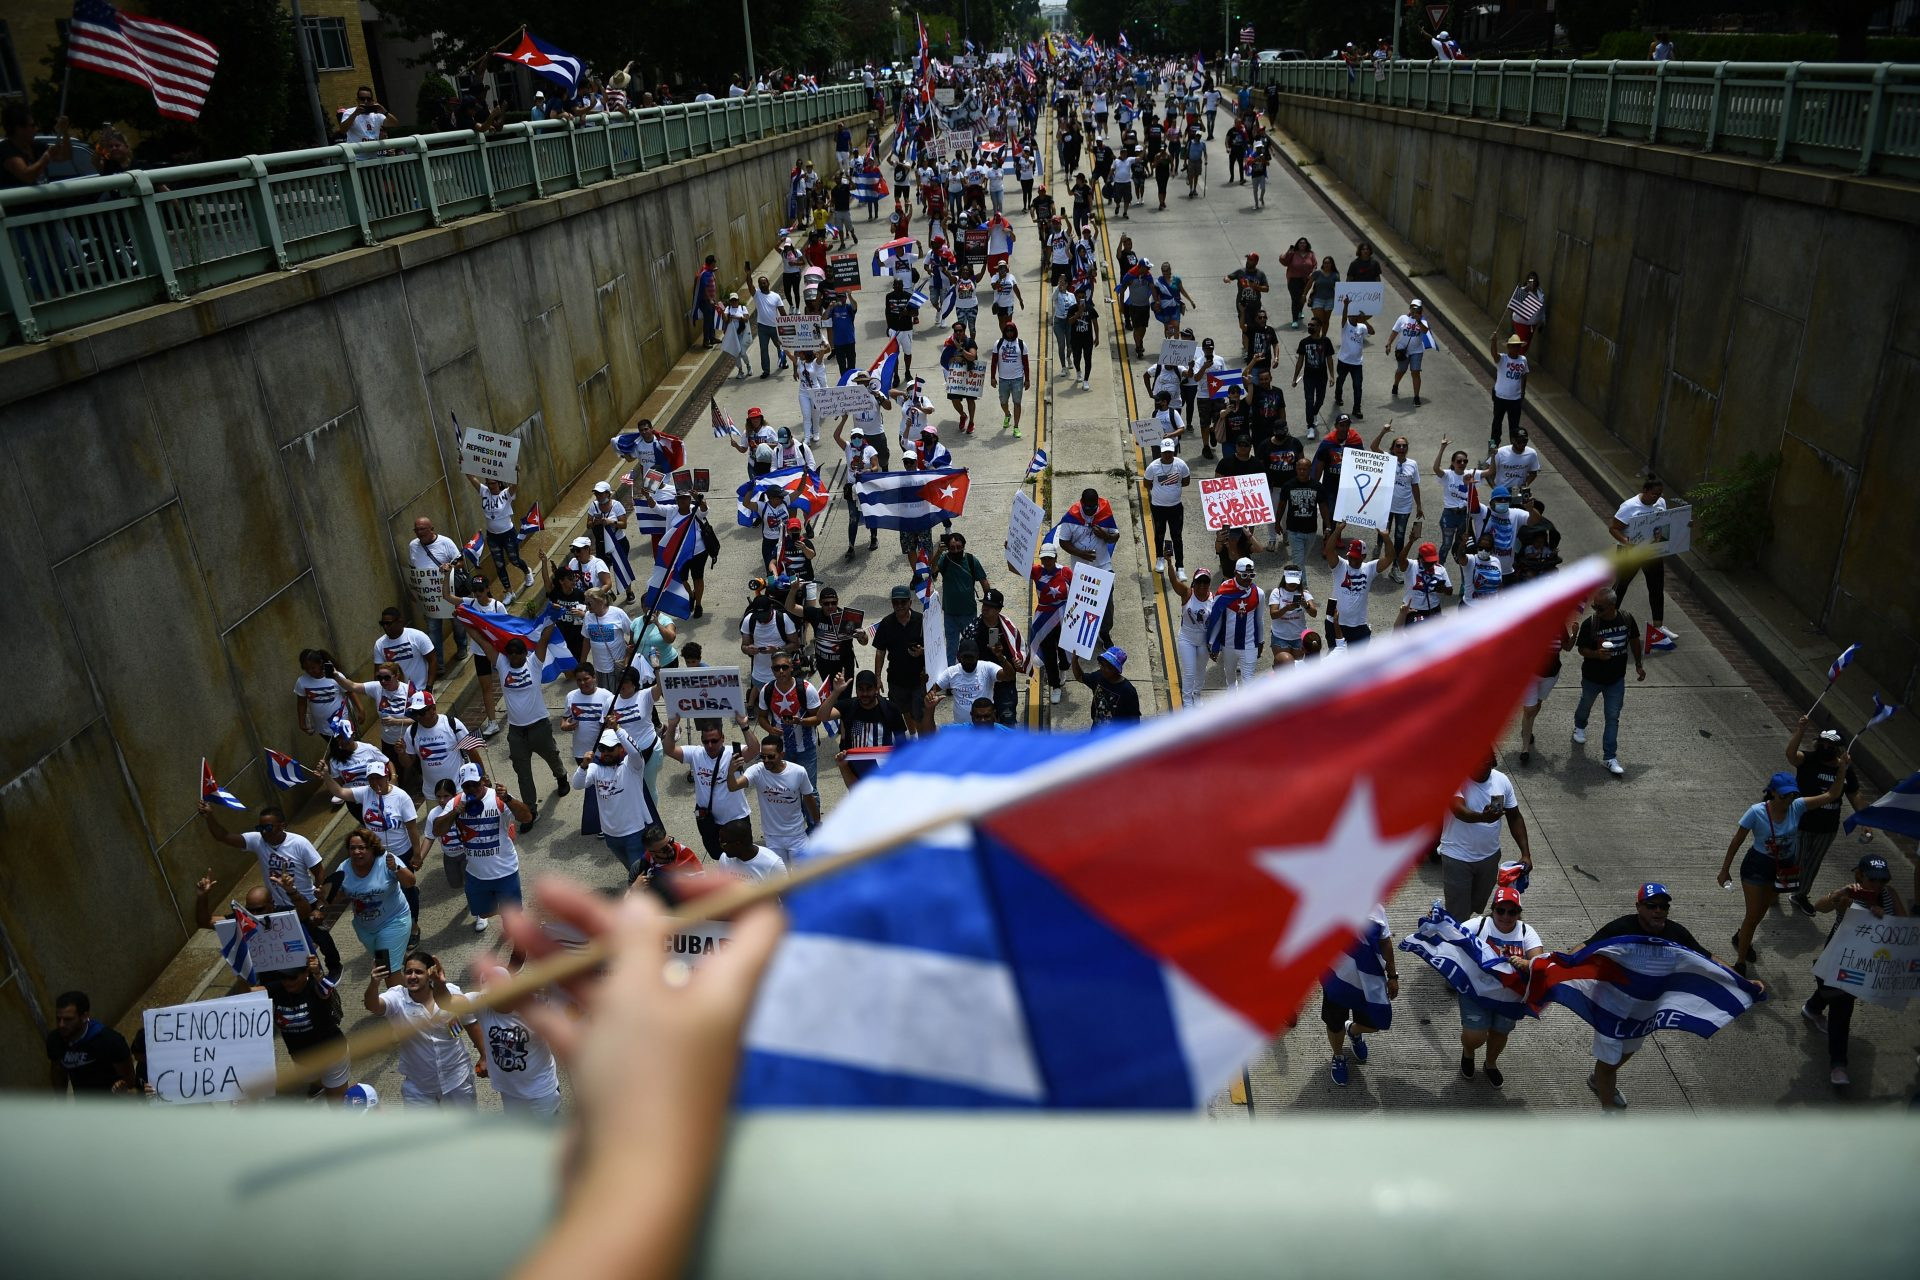 Is the Cuban revolution over?